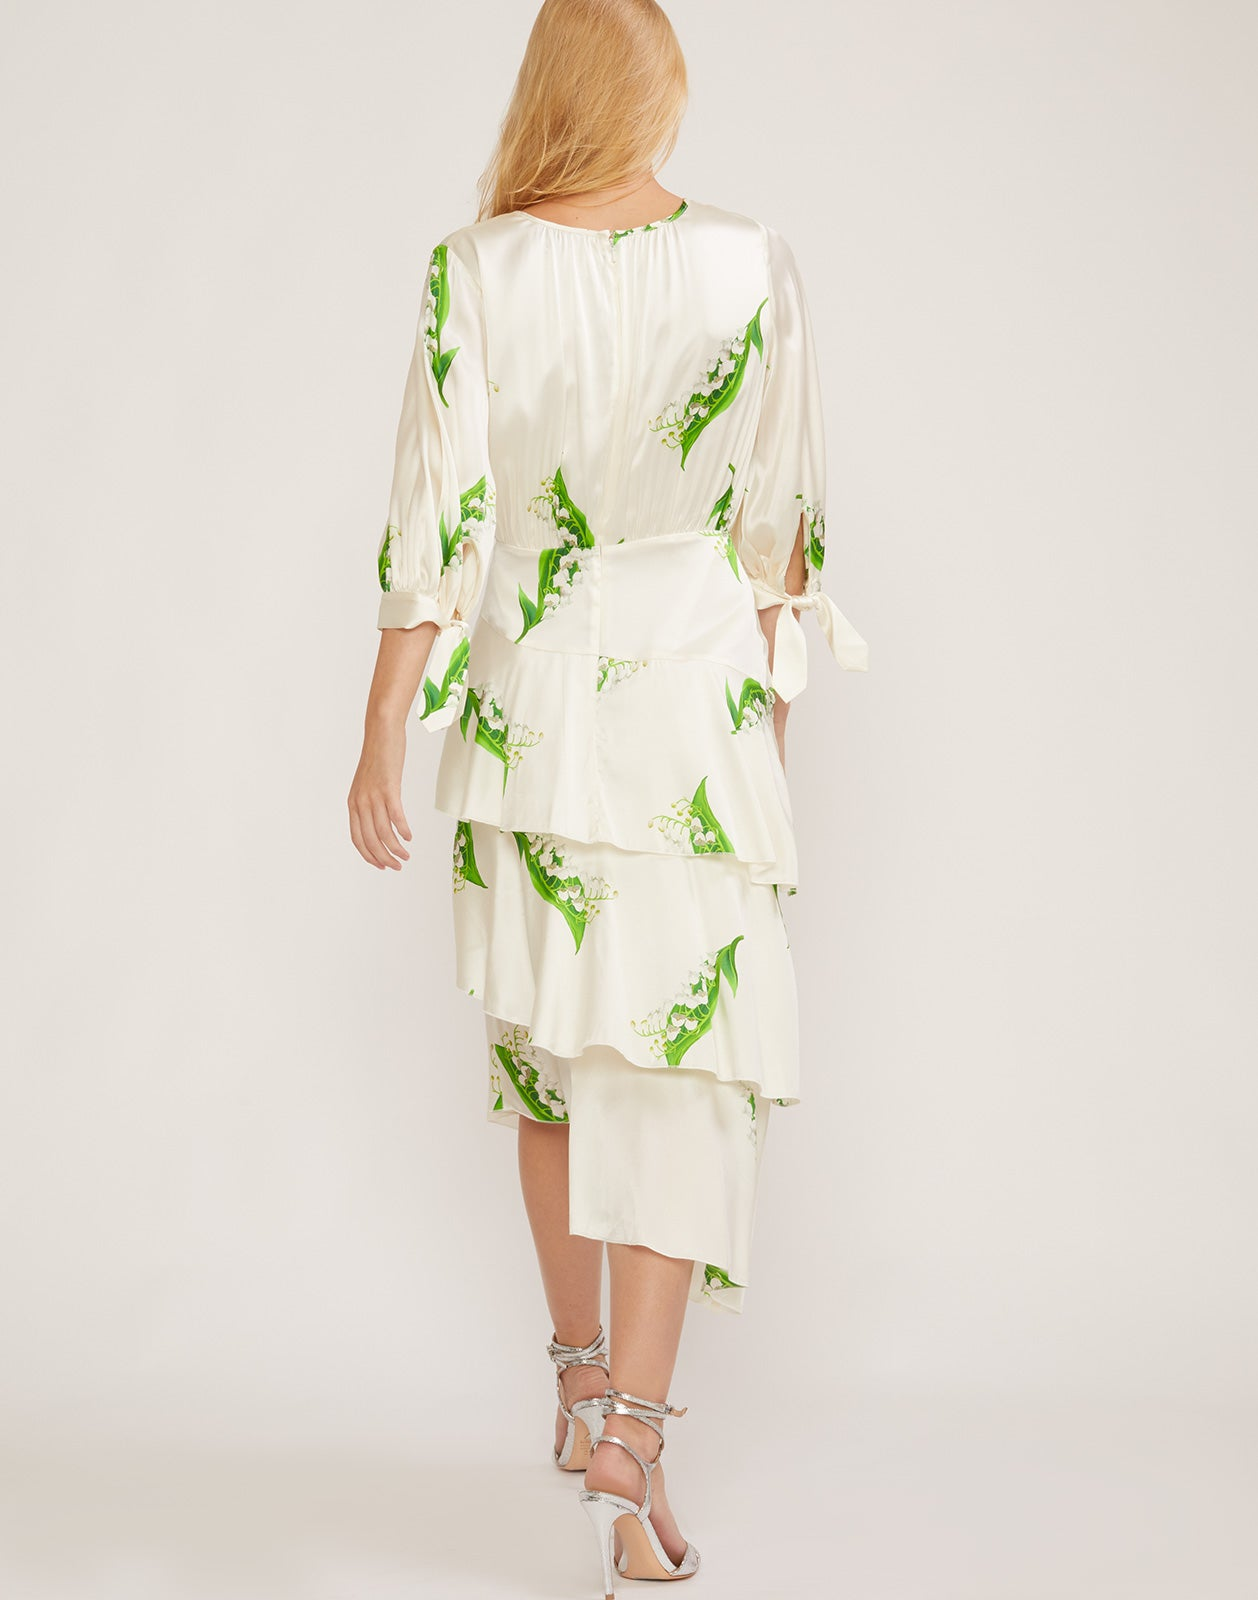 Back view Lily of the Valley tiered ruffle dress with asymmetrical hem.